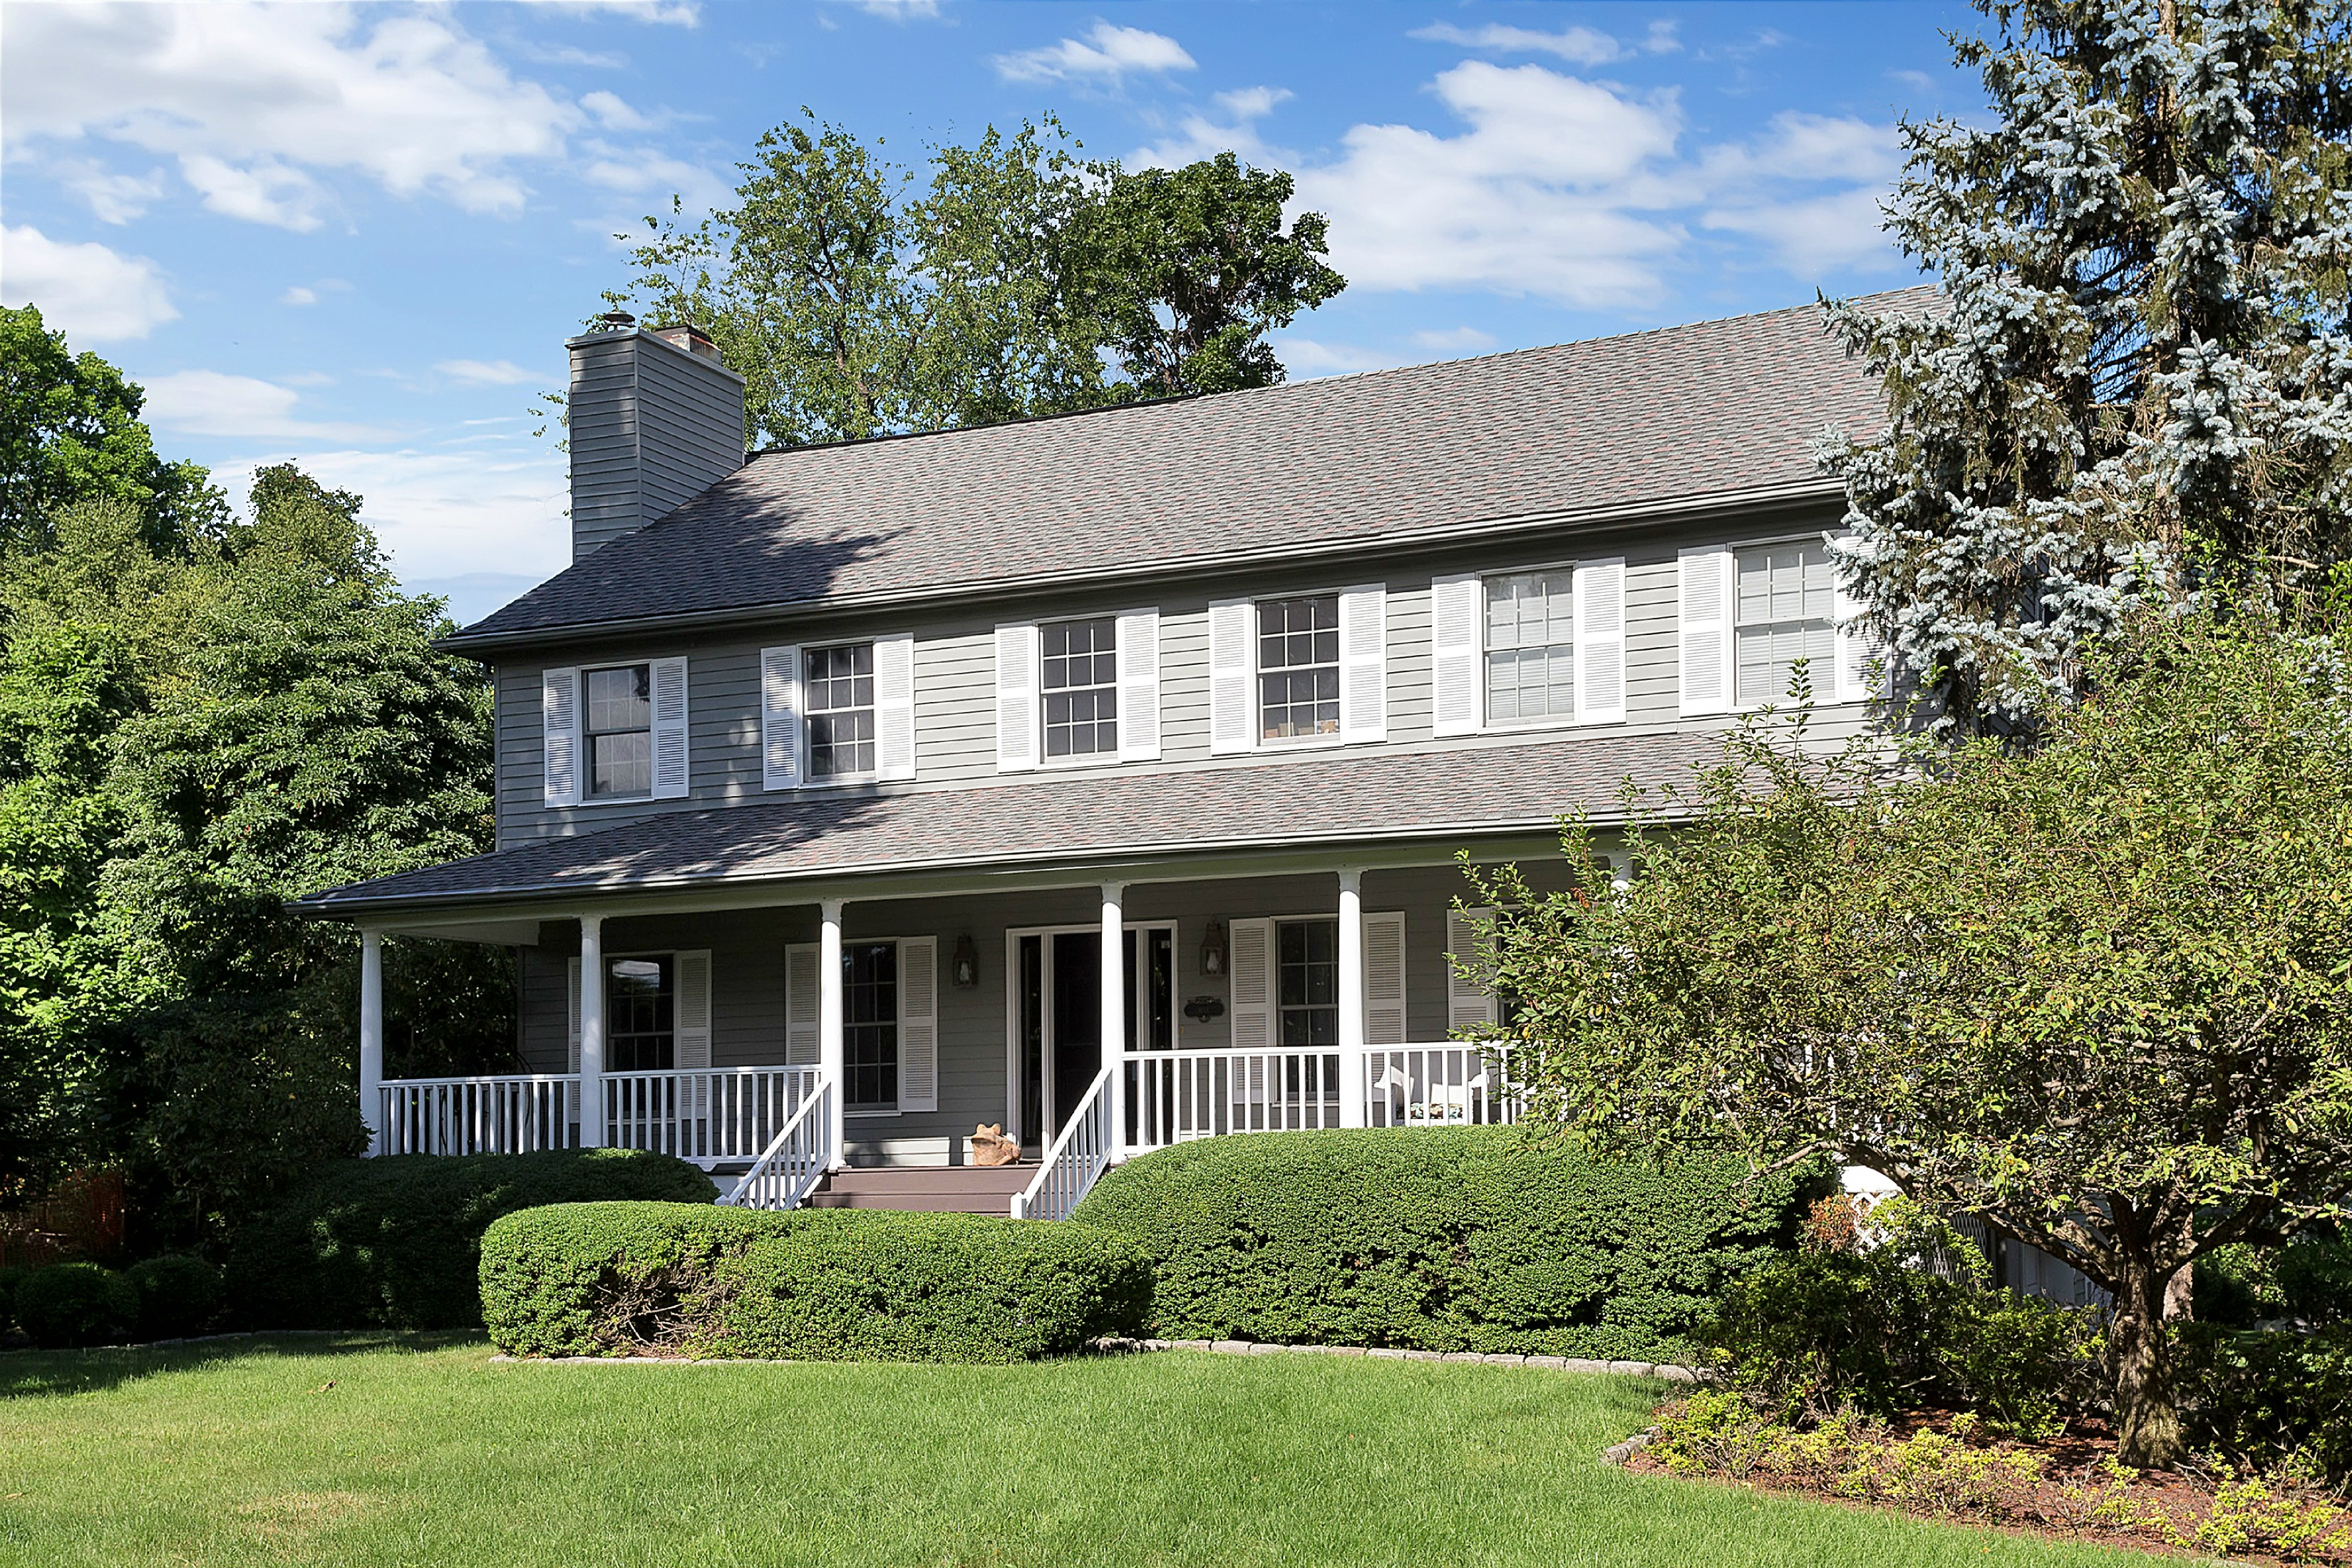 Single Family Home for Sale at Classic Contemporary Colonial 161 Mount Airy Road Croton On Hudson, New York, 10520 United States